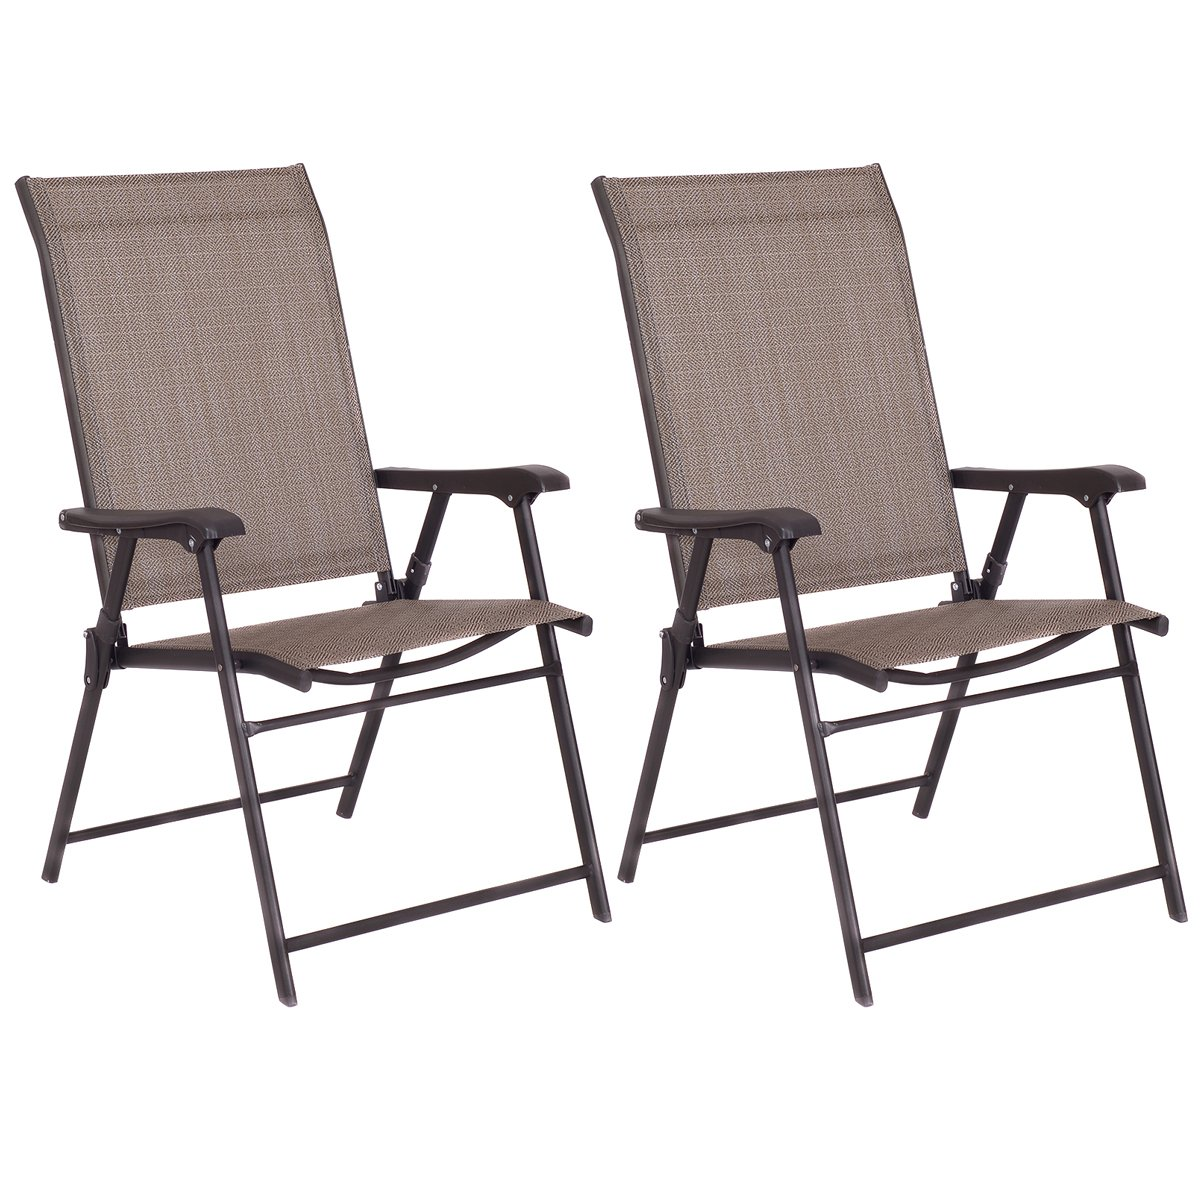 Giantex Patio Folding Sling Chairs Furniture Camping Deck Garden Pool Beach (Set of 2) by Giantex